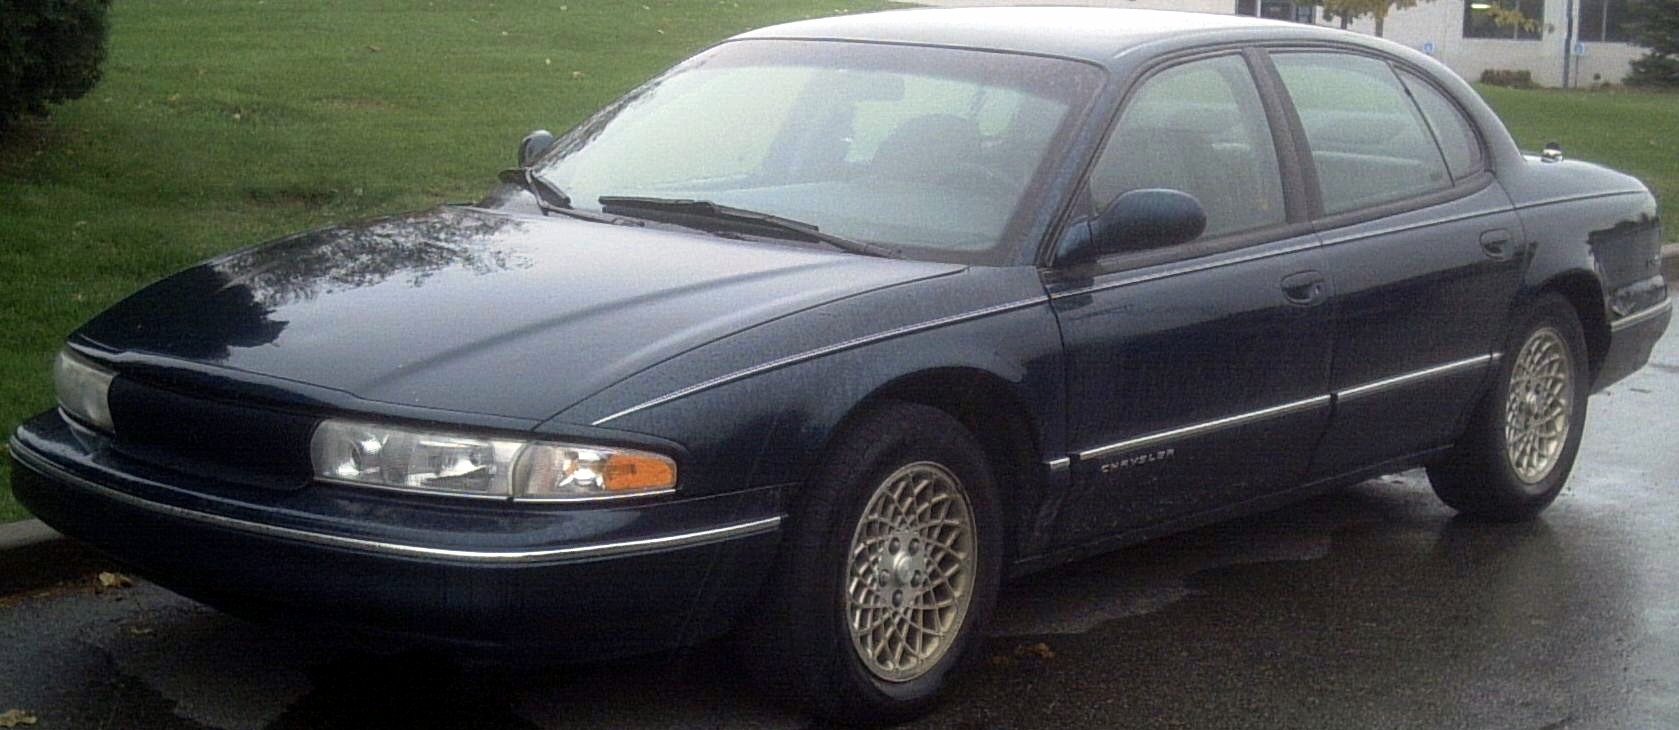 Page10 likewise 5872 1994 Chrysler Lhs 3 further 175 besides 12353199793 furthermore 69735494210676958. on chrysler